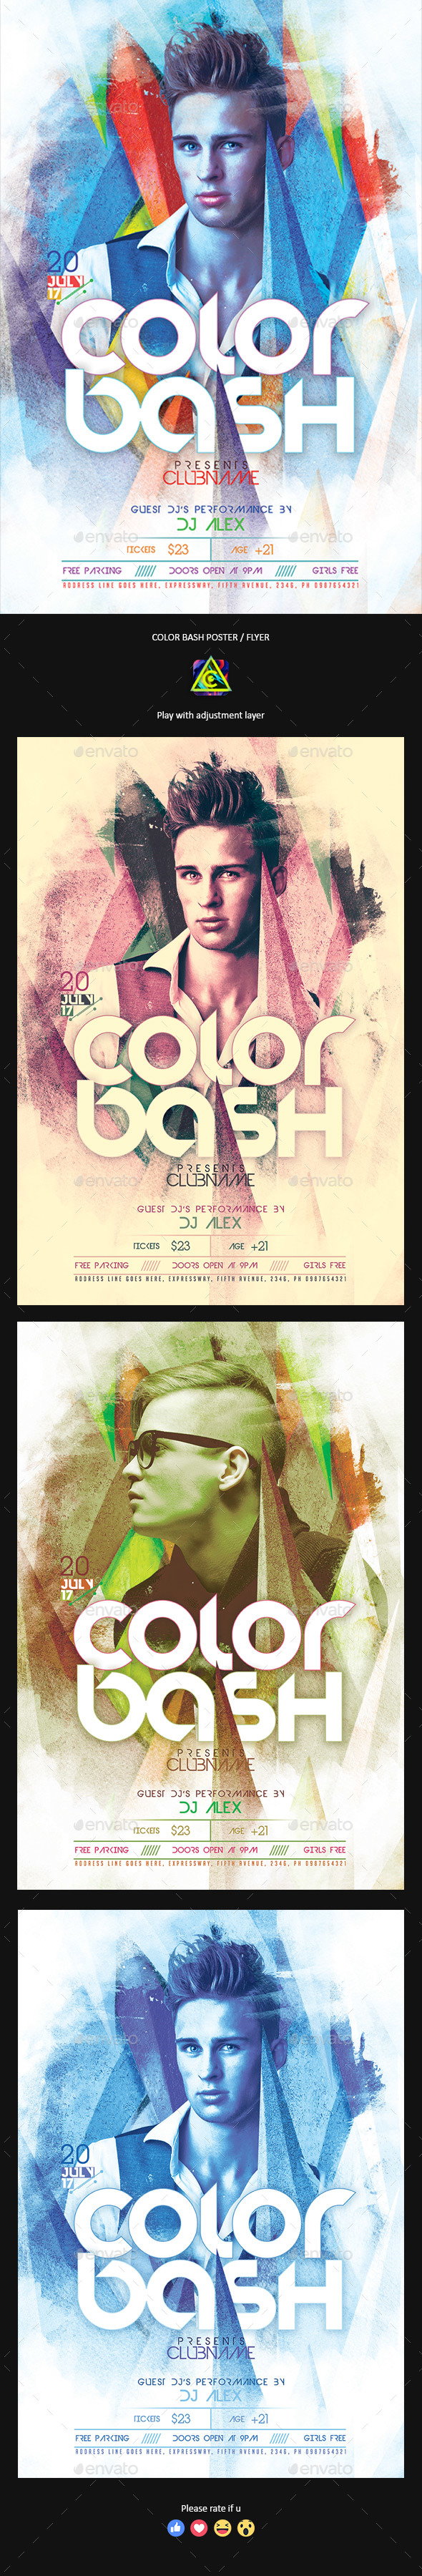 Color Bash Party Poster / Flyer - Clubs & Parties Events